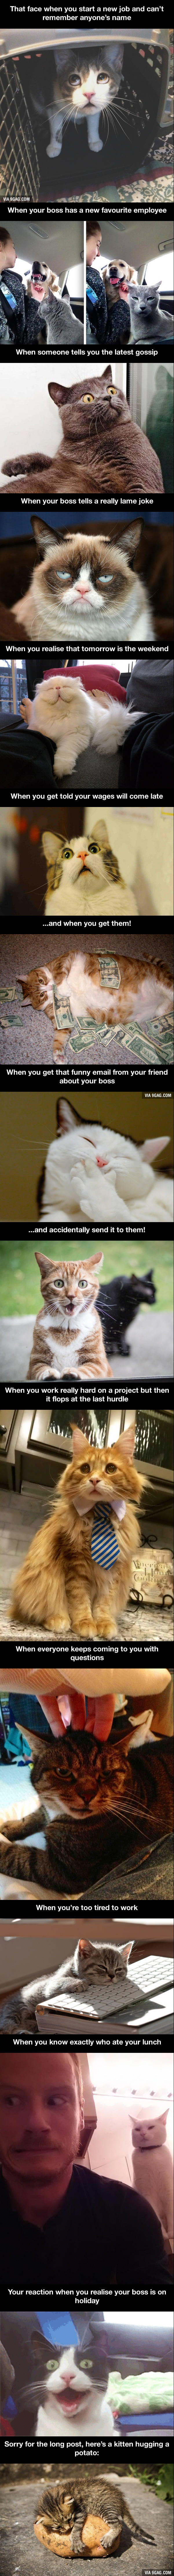 14 hilarious cats who behave exactly like us at work